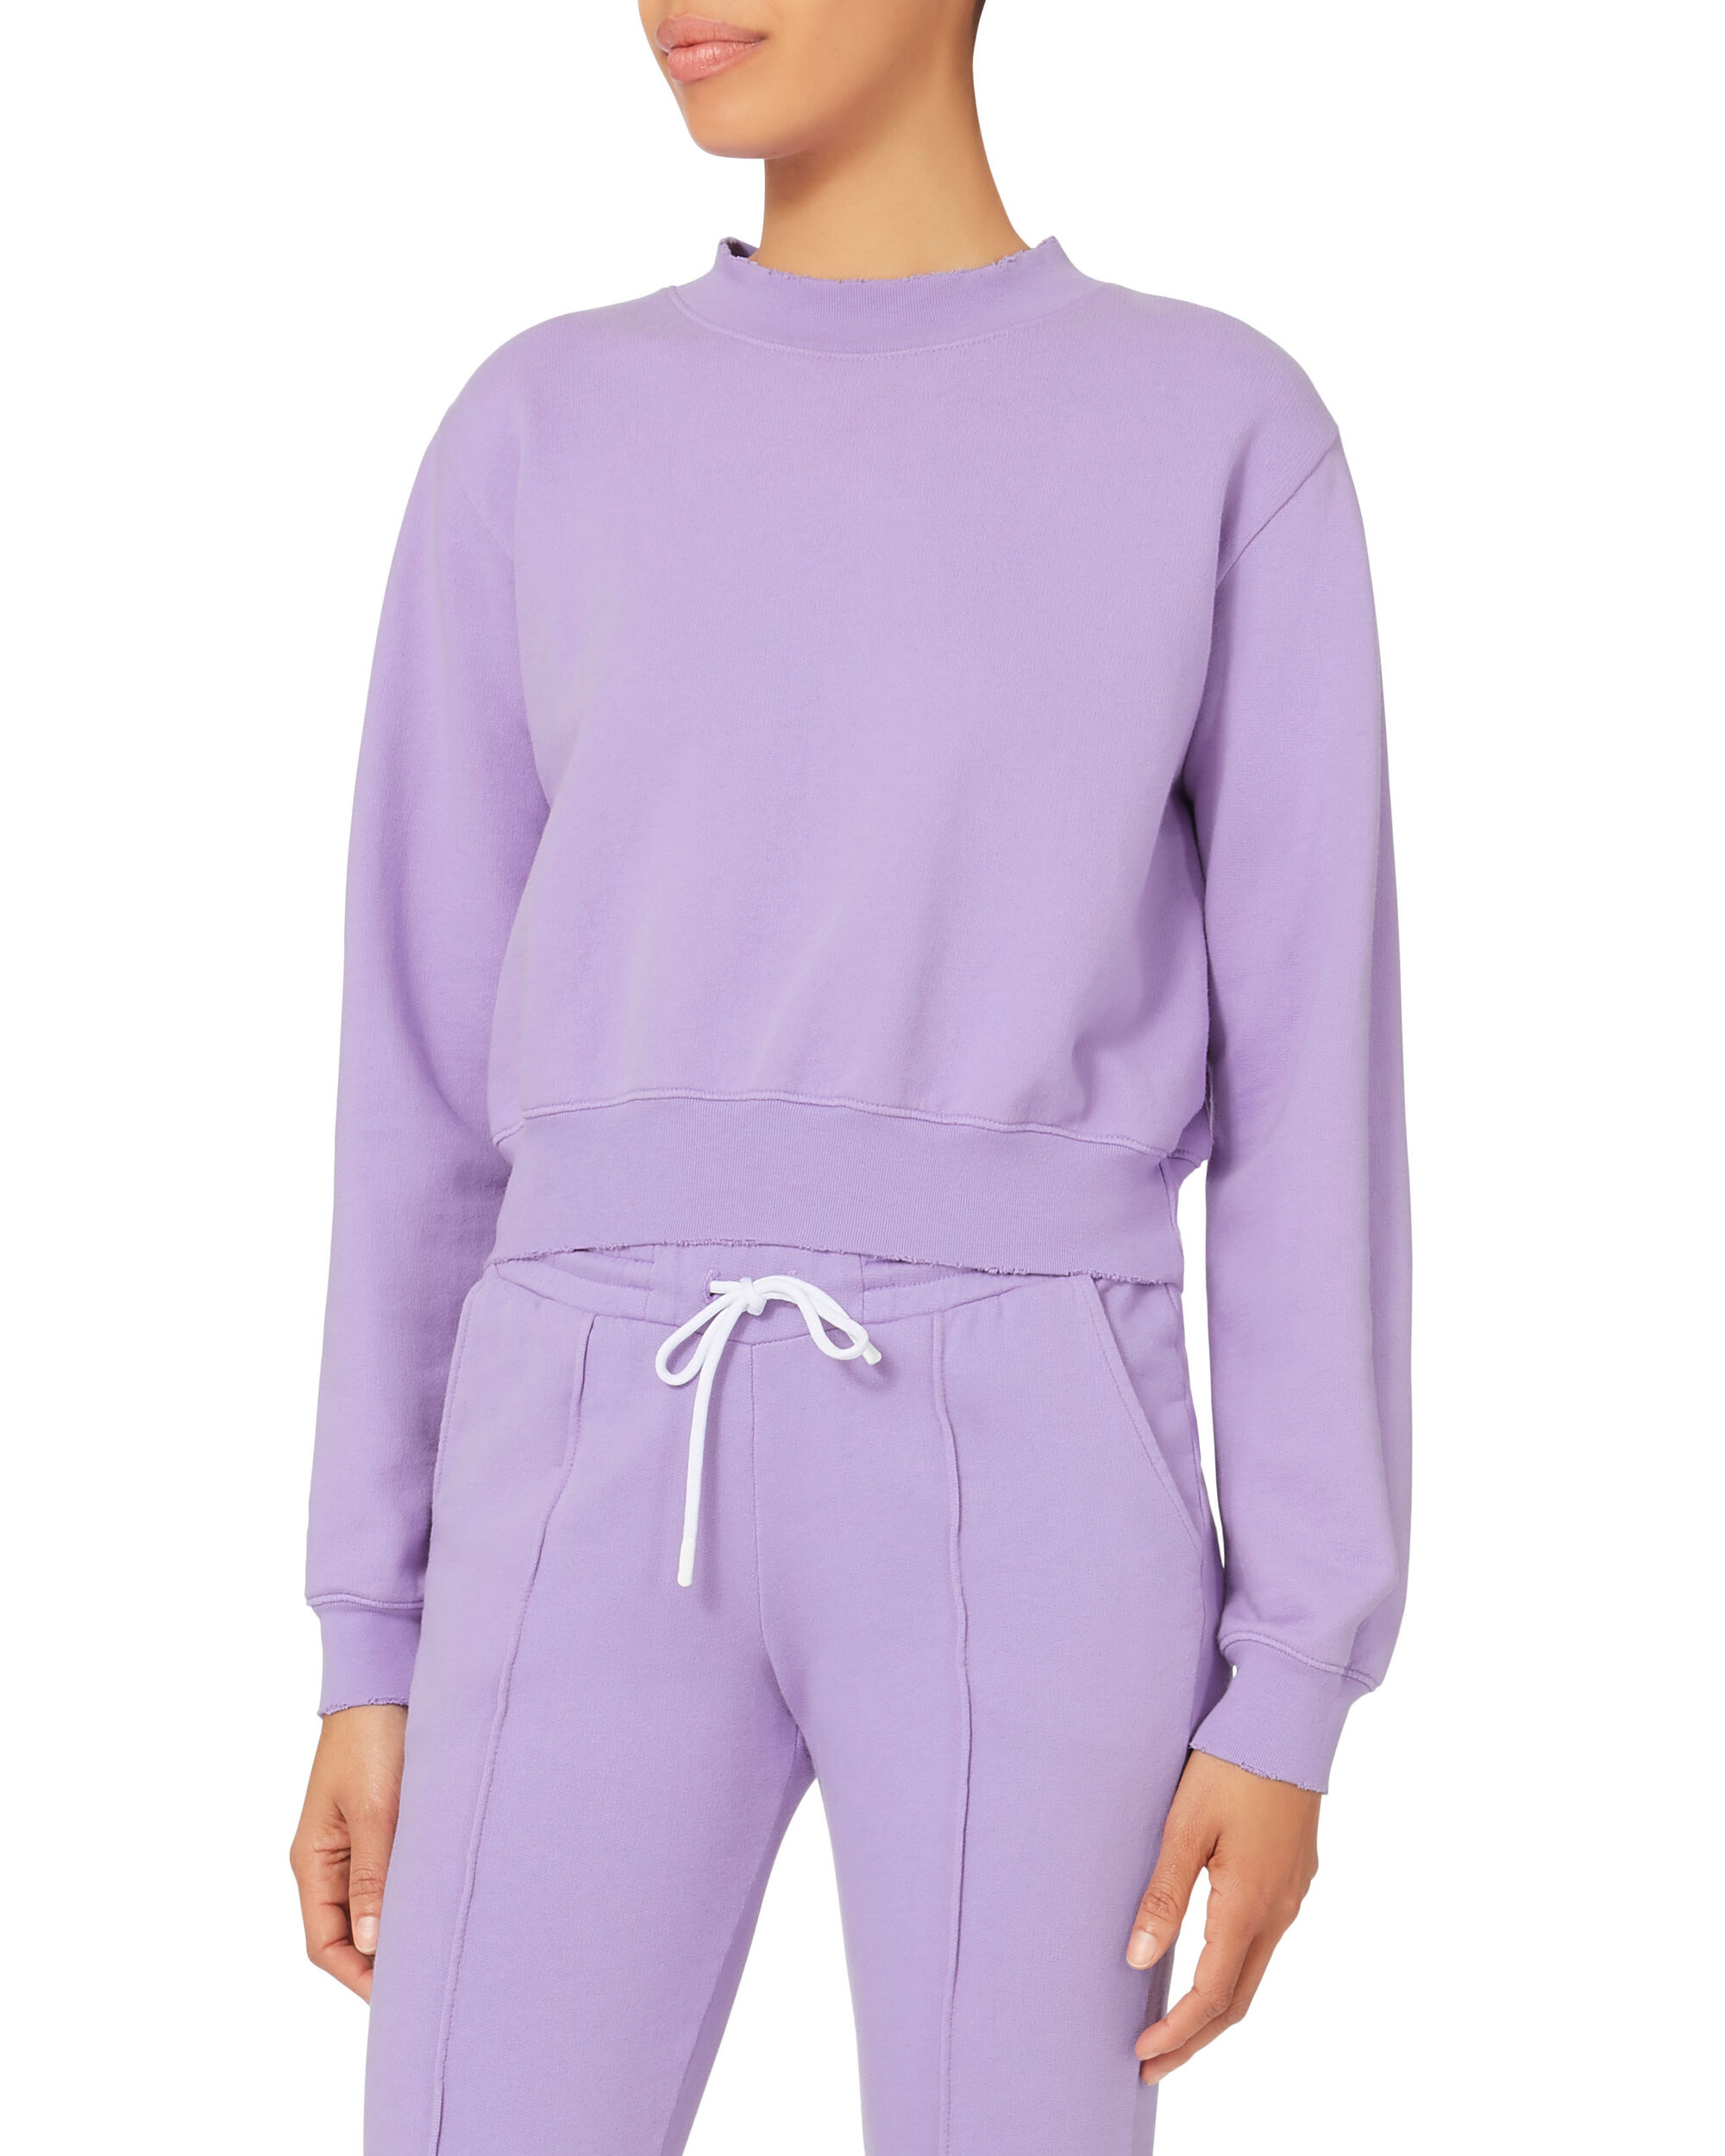 Milan Cropped Purple Sweatshirt, PURPLE-LT, hi-res